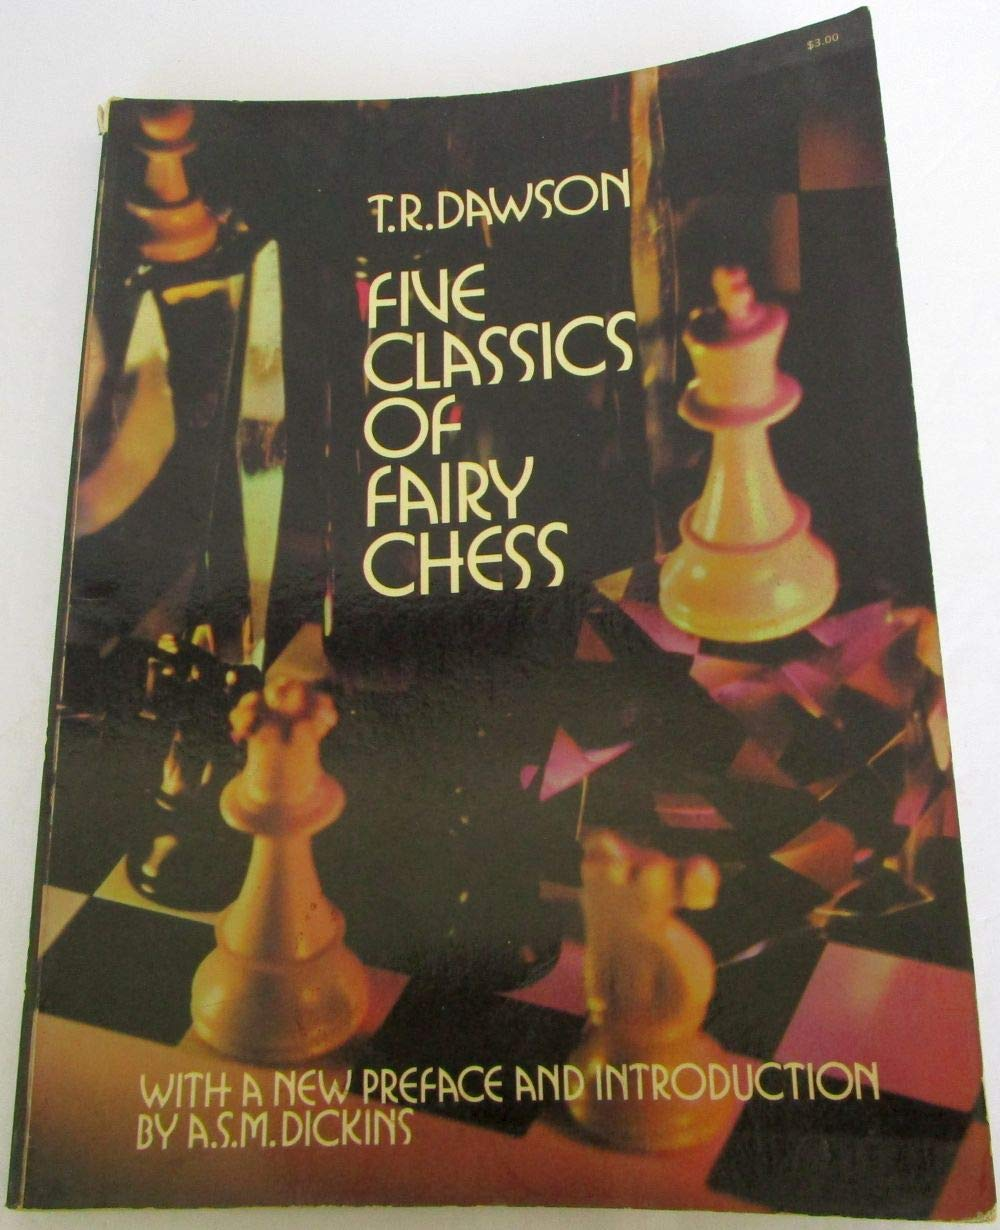 Five Classics of Fairy Chess, TR Dawson, Dover Publications Inc.; Revised edition (1 Sept. 1973)